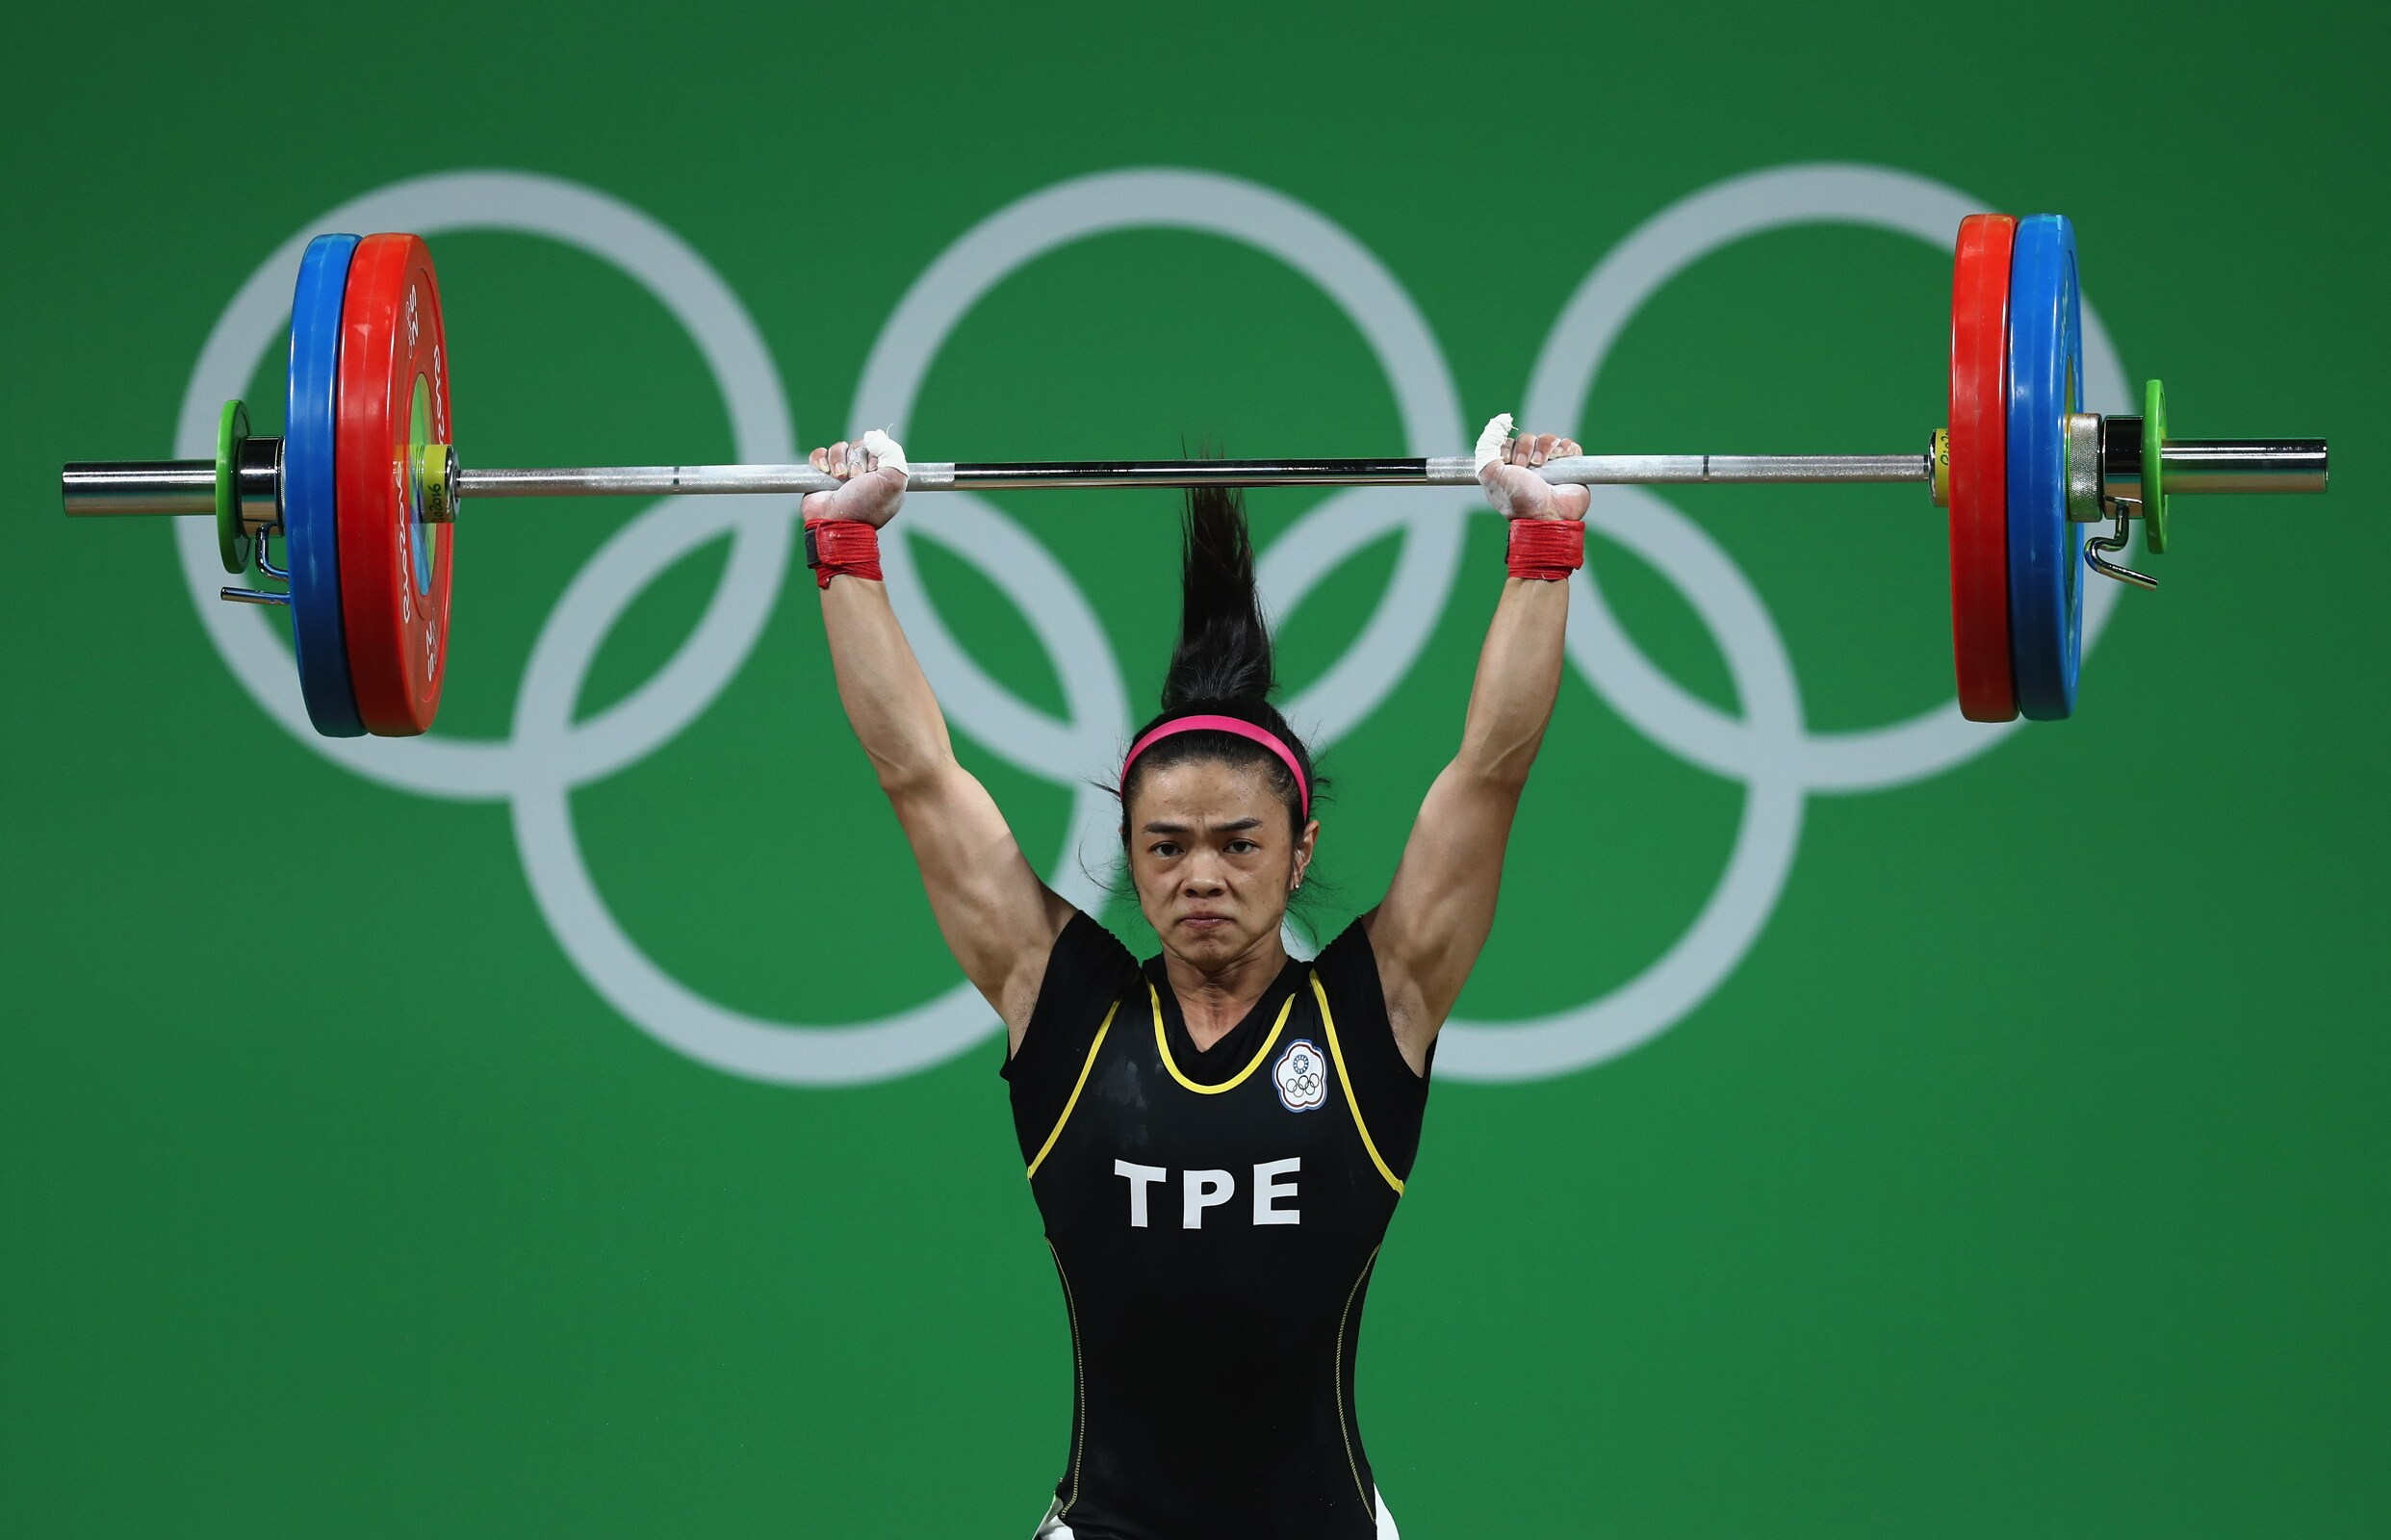 Weightlifting - Women's 53kg